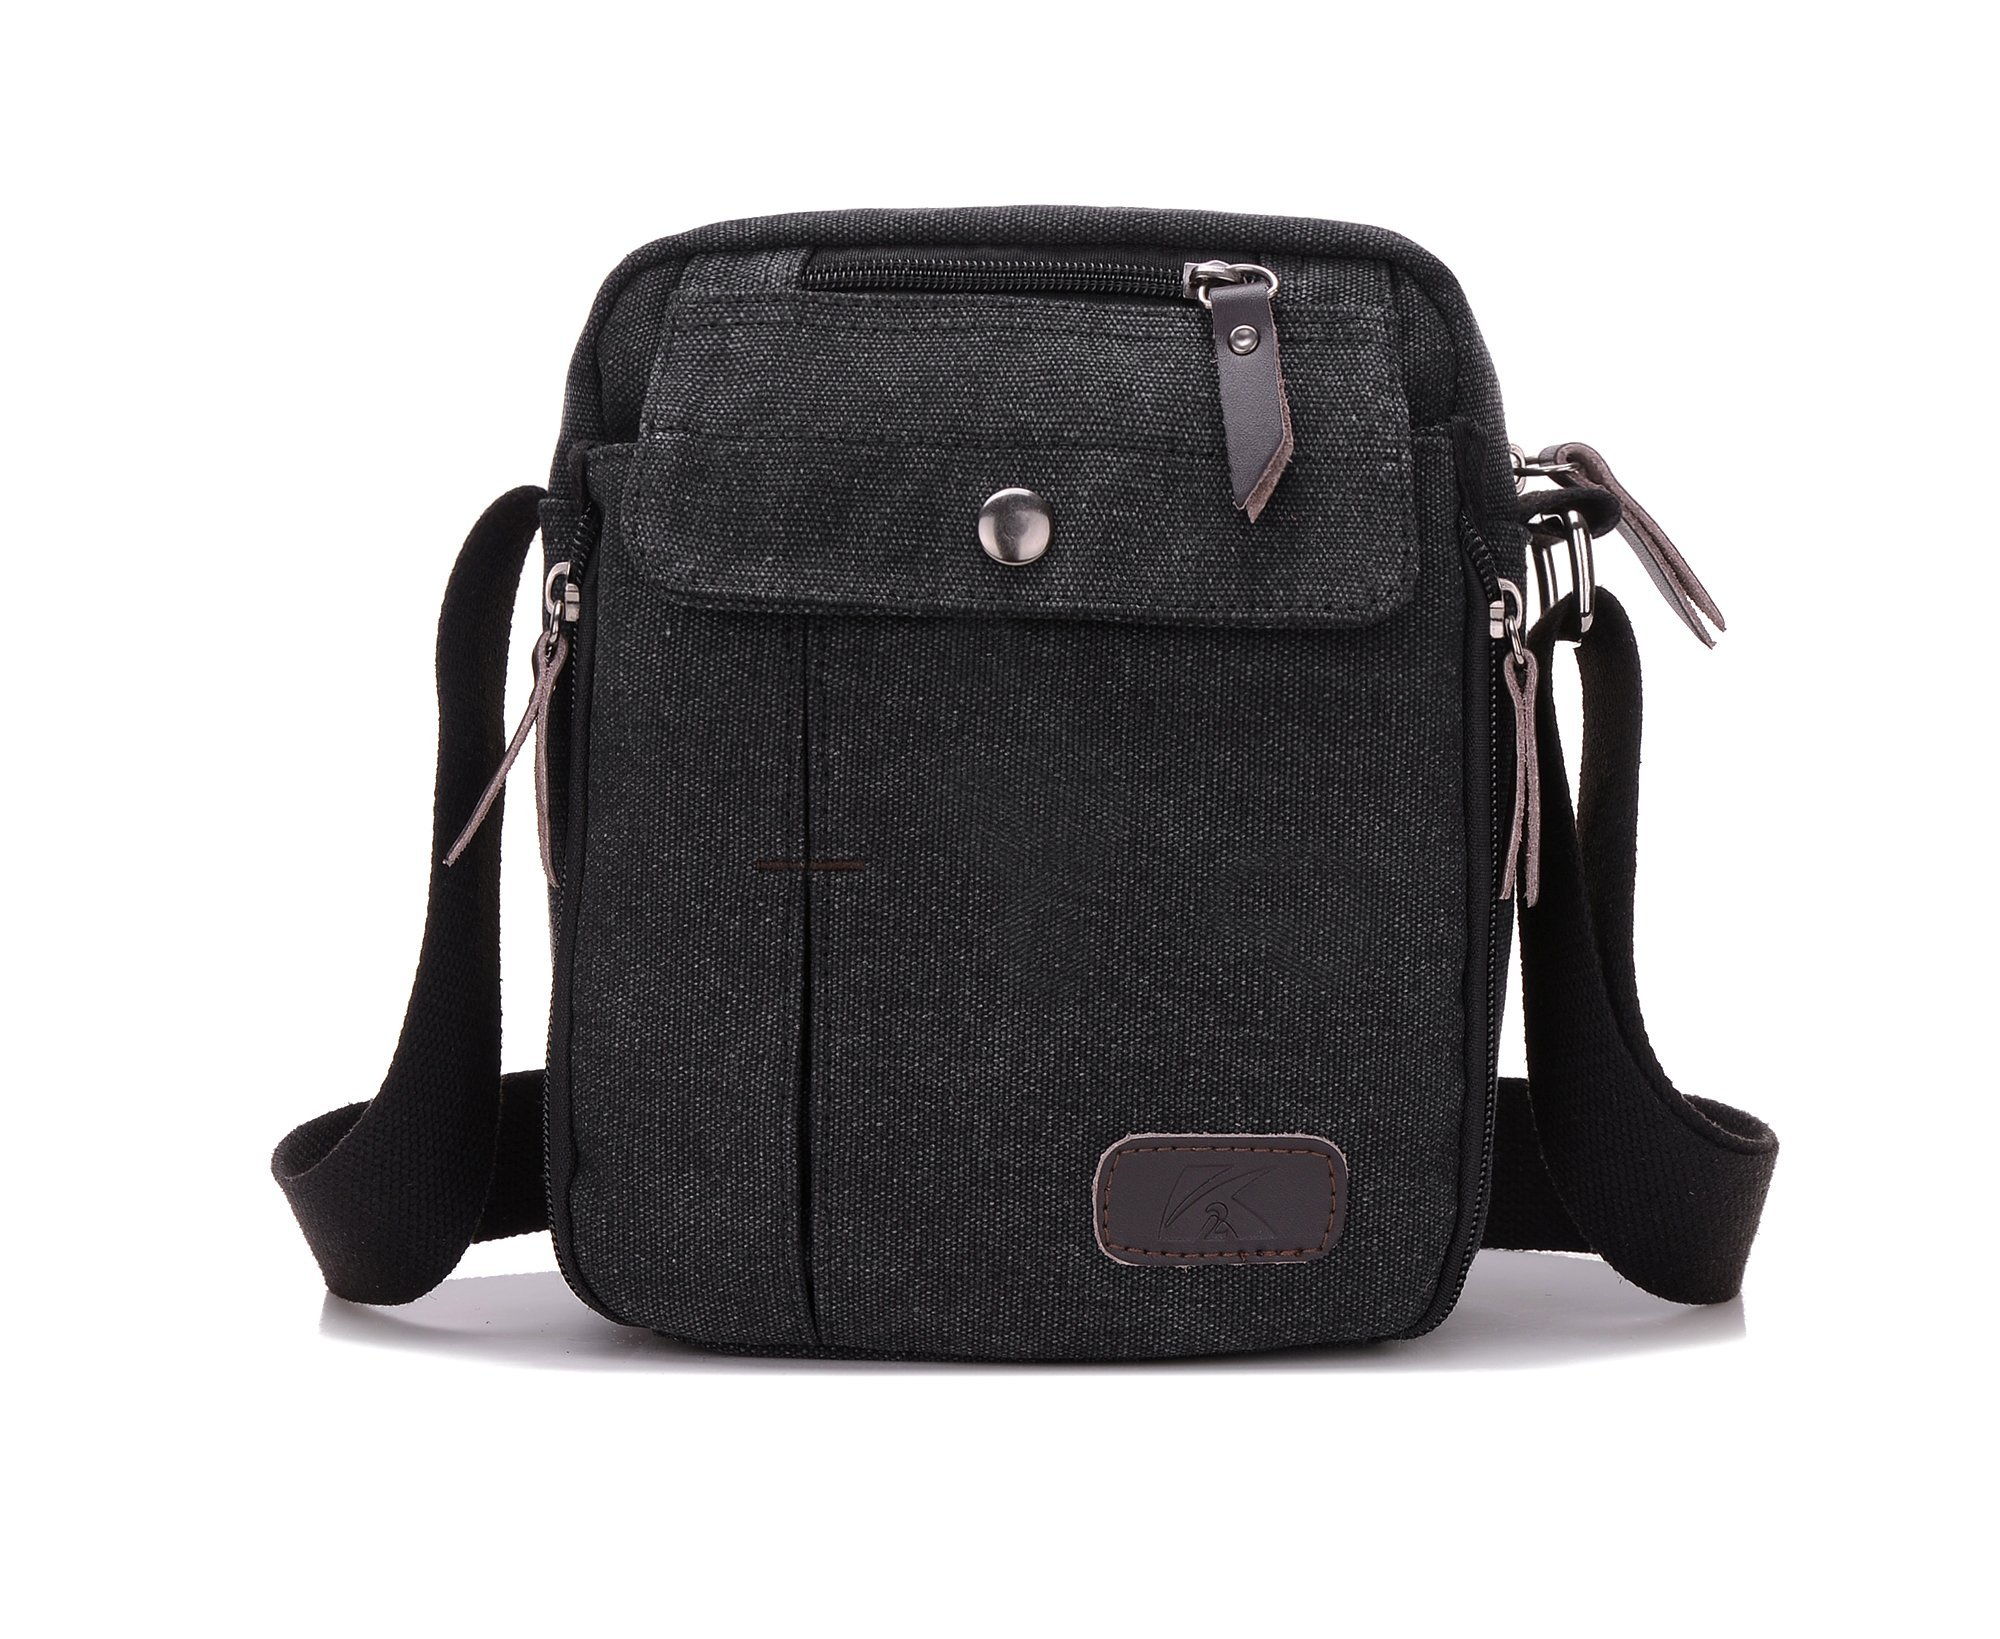 Heavy-Duty Canvas Small Messenger Bag Classic Multi-pocket Mini Shoulder Crossbody Bags Travel Purse by Haoguagua (Image #2)